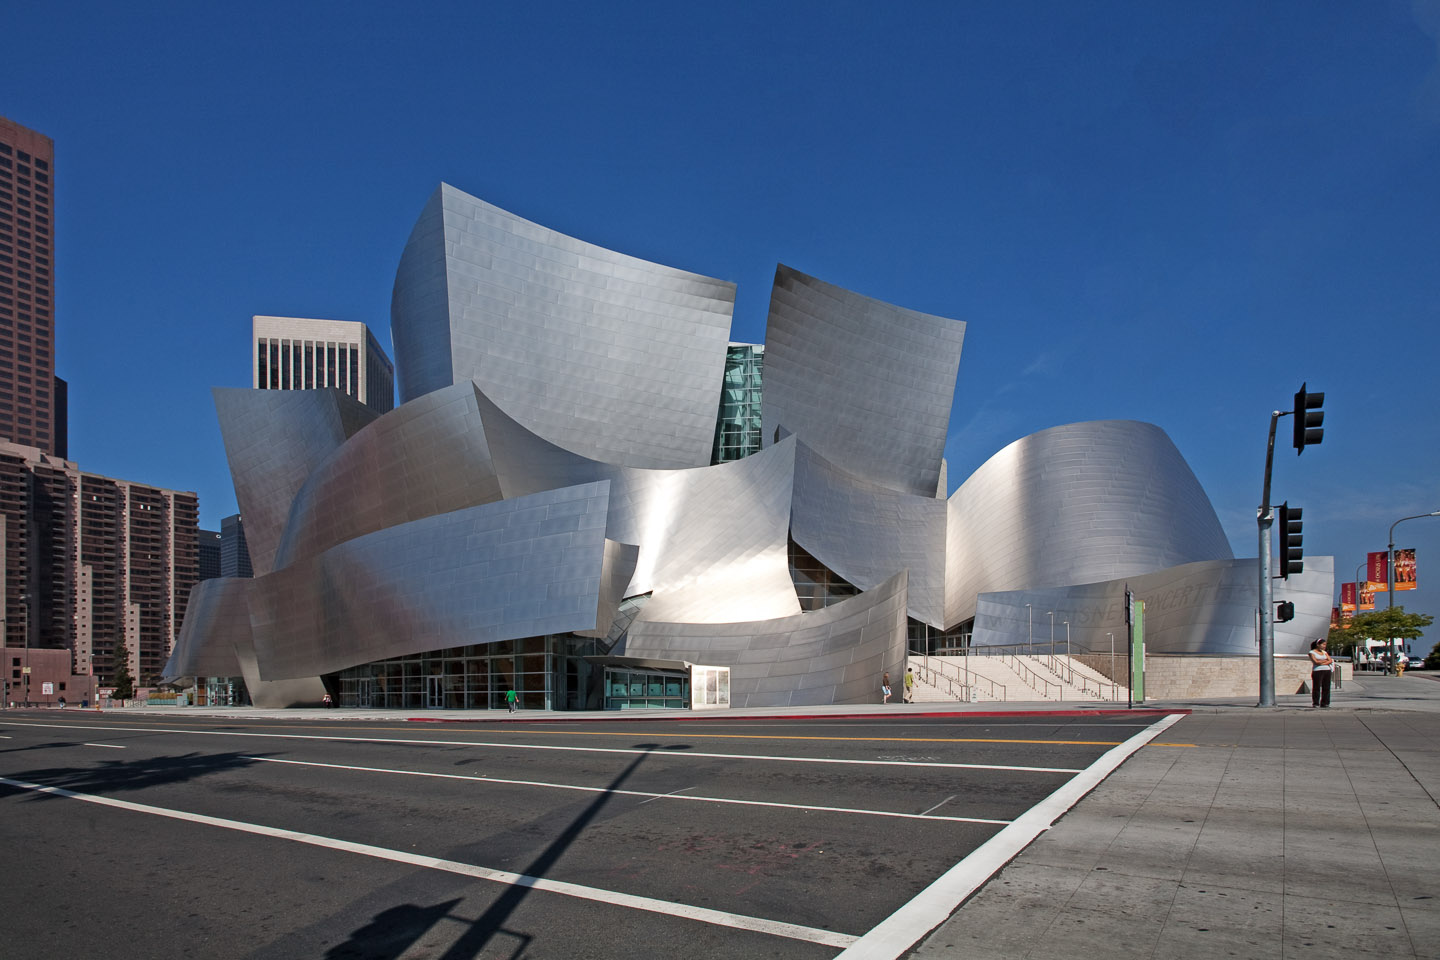 a street view of the Walt Disney Concert Hall, designed by Frank Gehry, located in Los Angeles, photographed by Jacob Rosenfeld